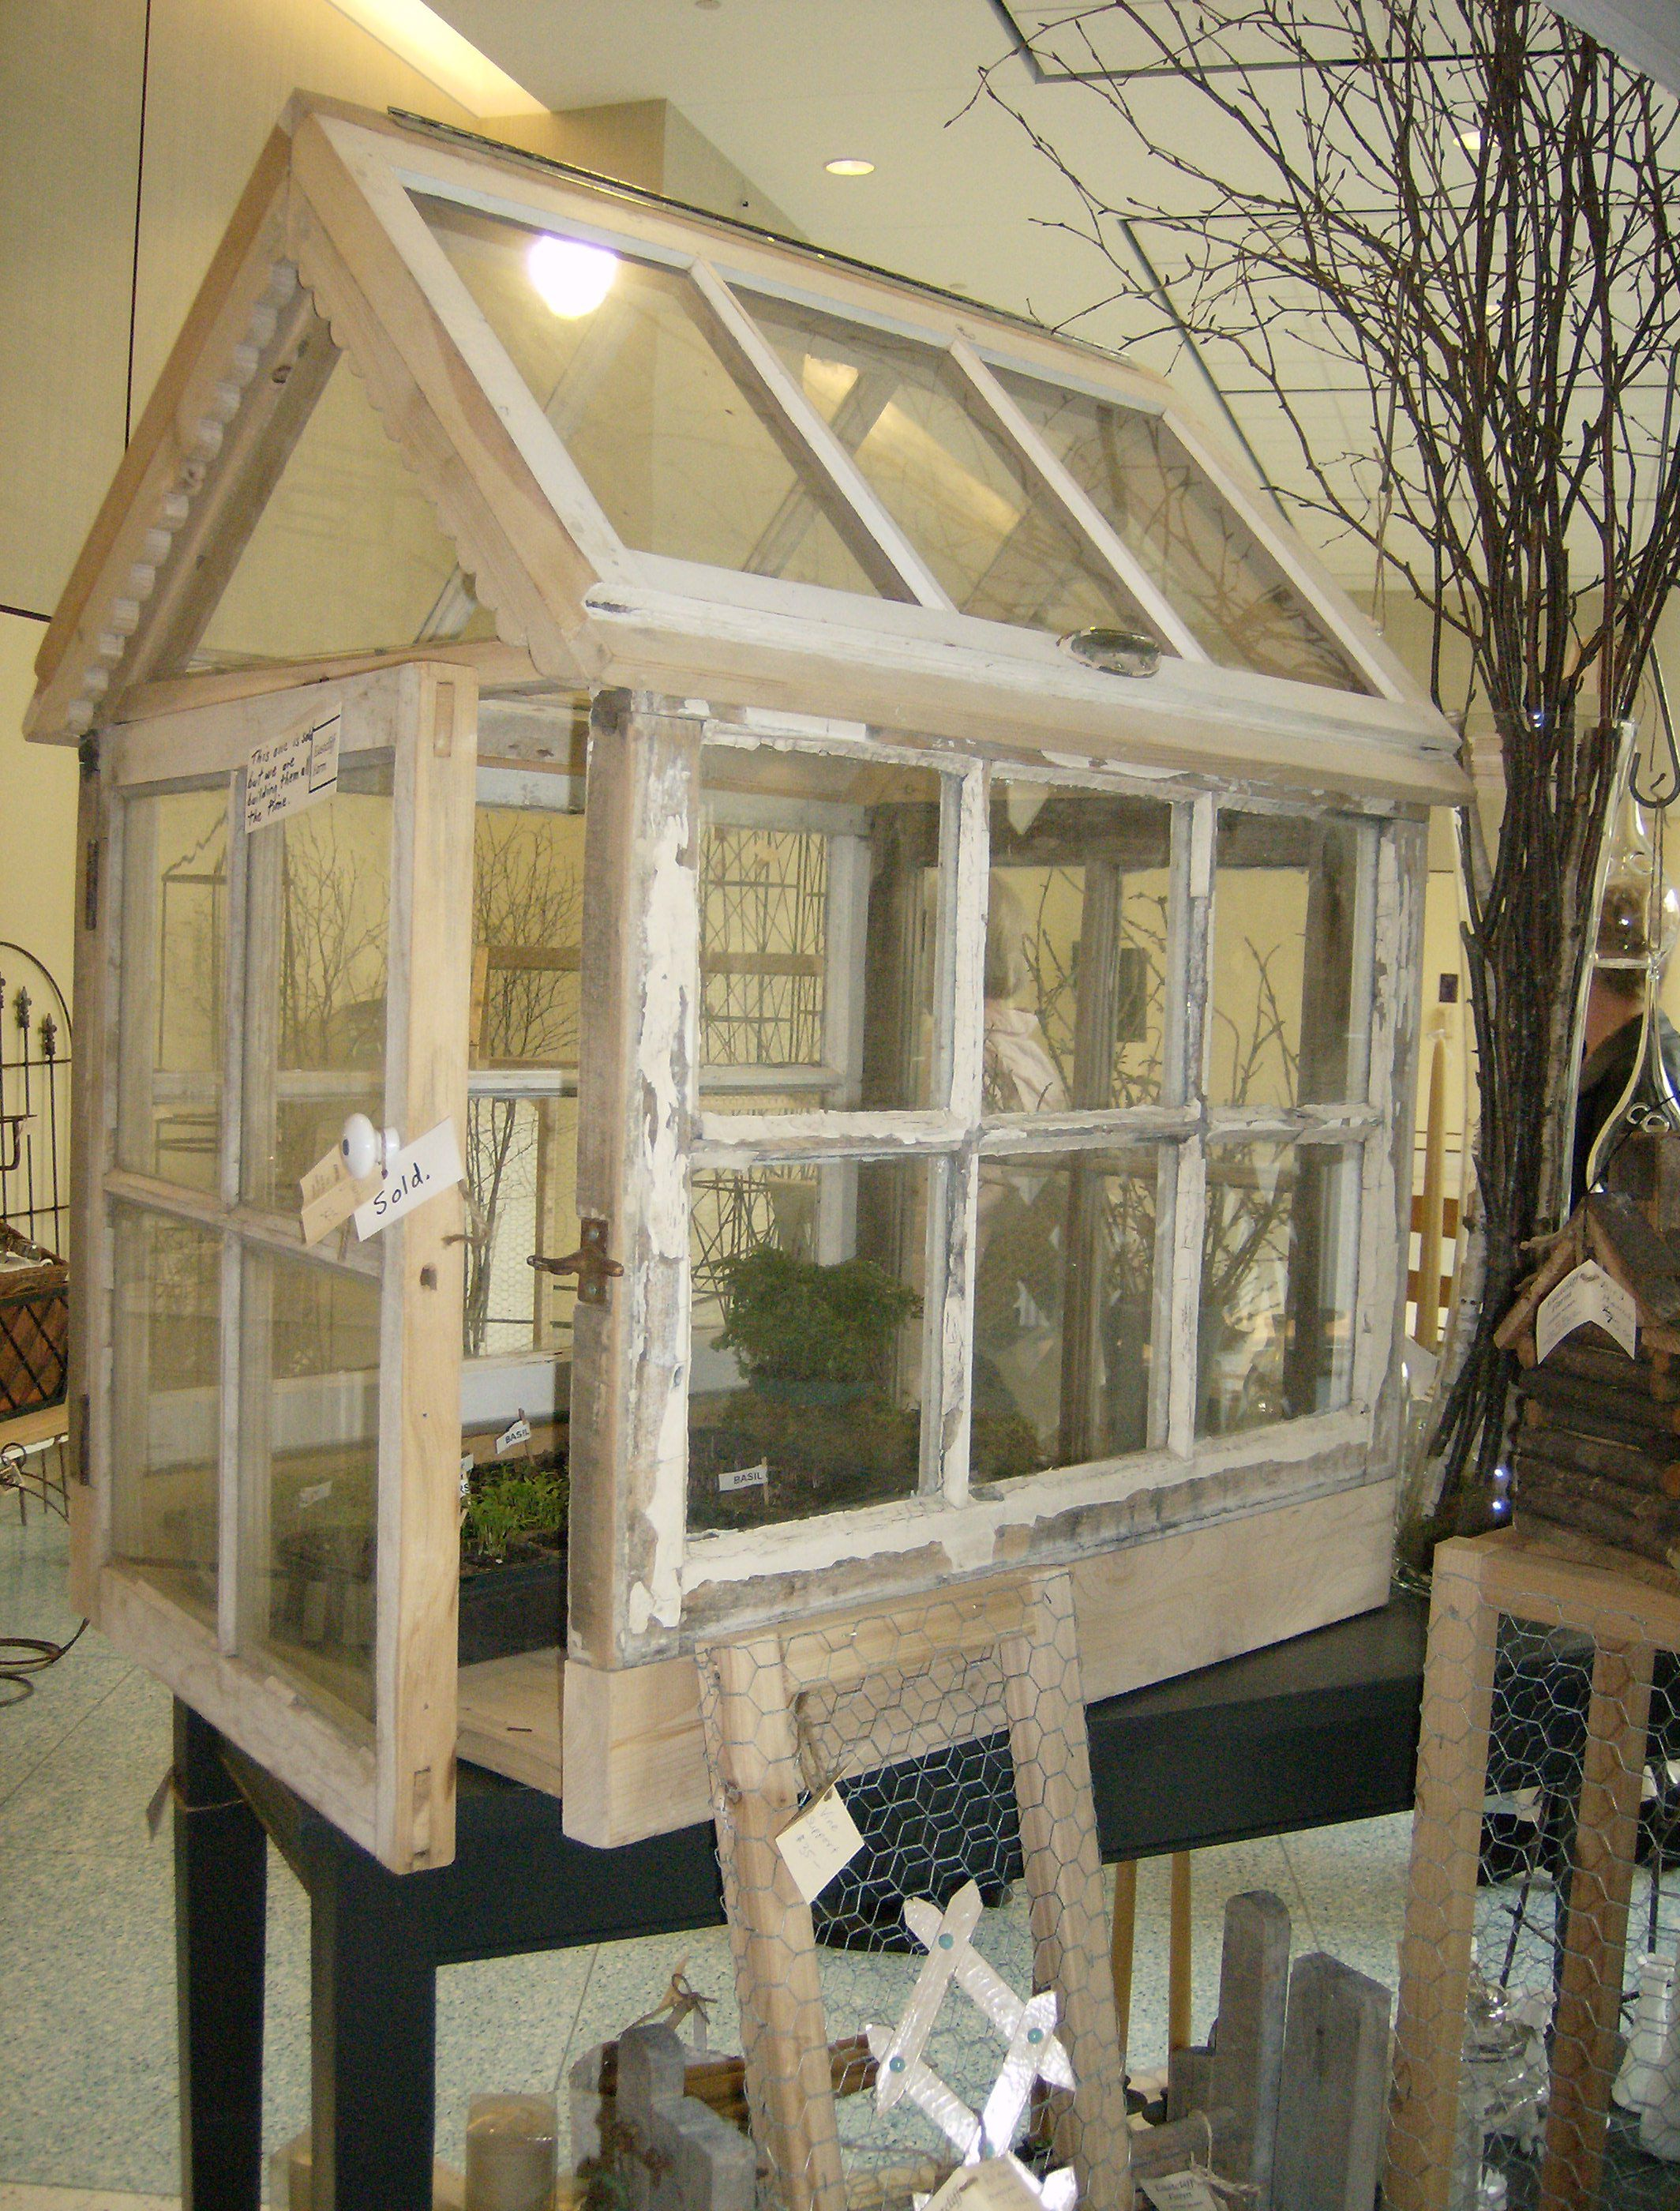 Growing Spaces Greenhouse Inspiring The Locavore In All Of Us Greenhouse Plans Wooden